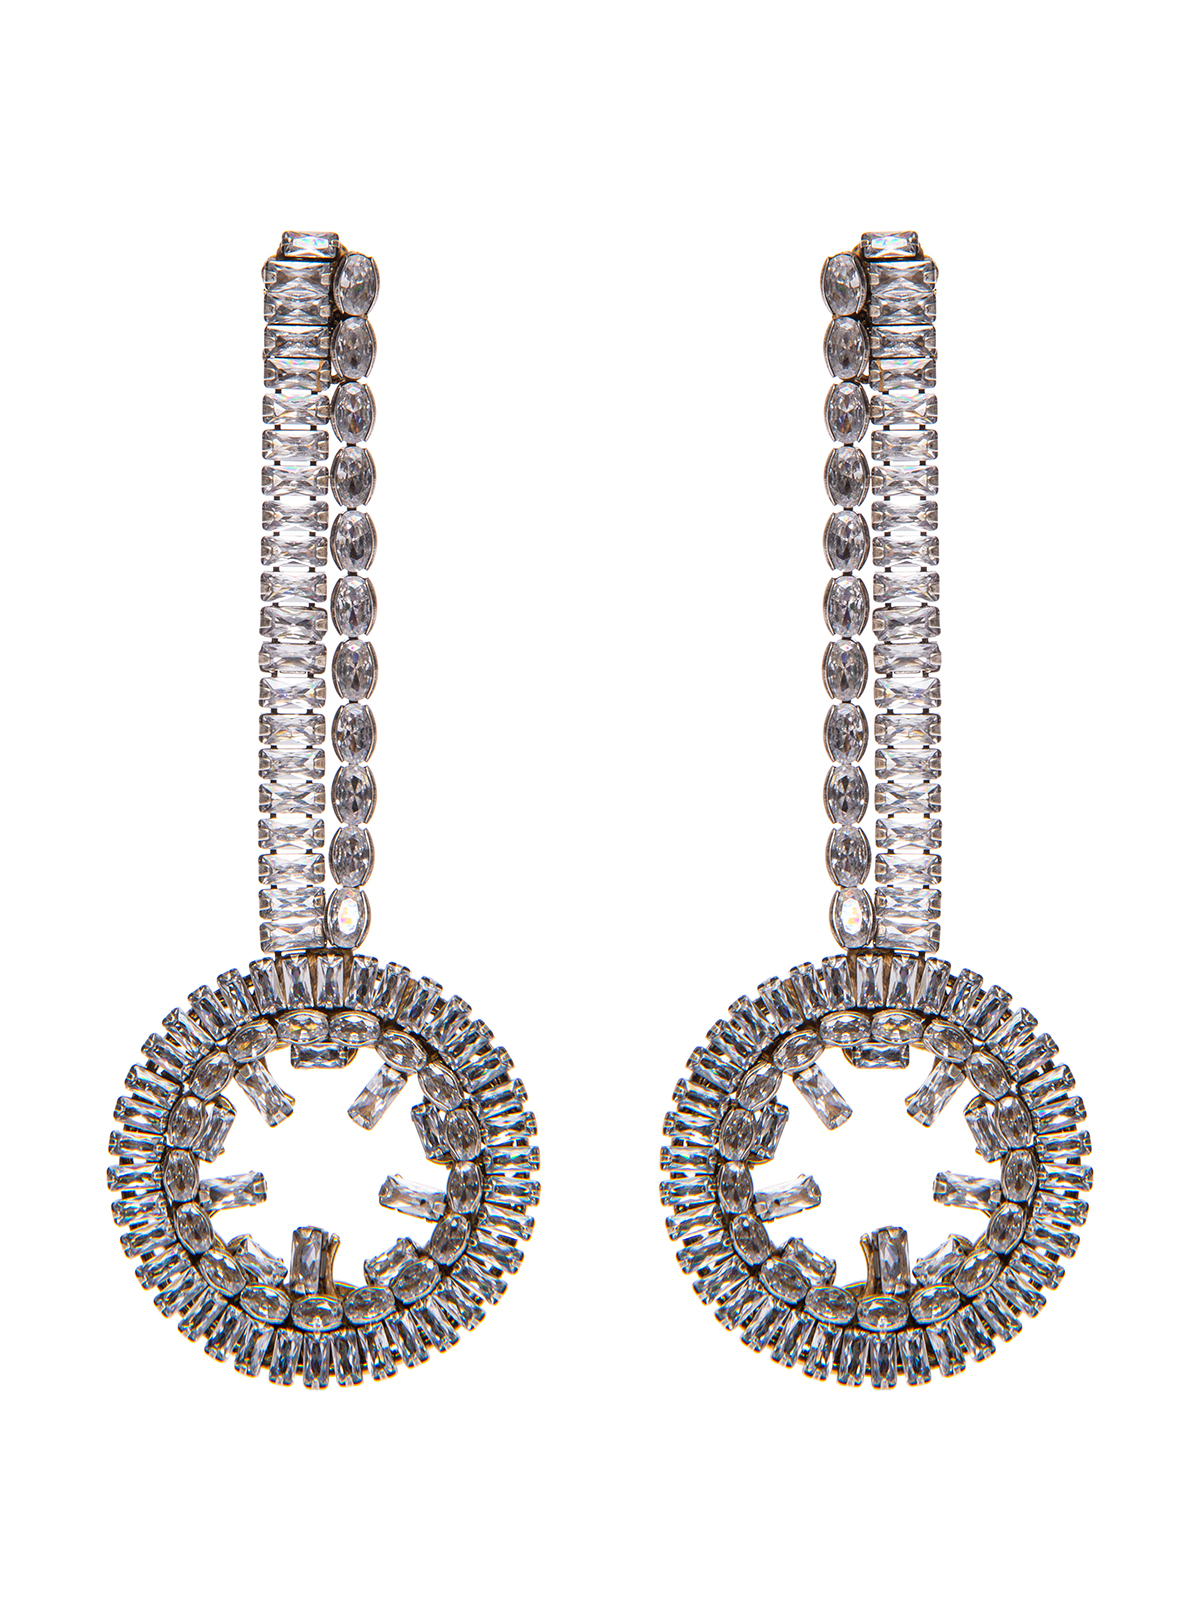 Earrings with round jewel pendant embroidered with stones